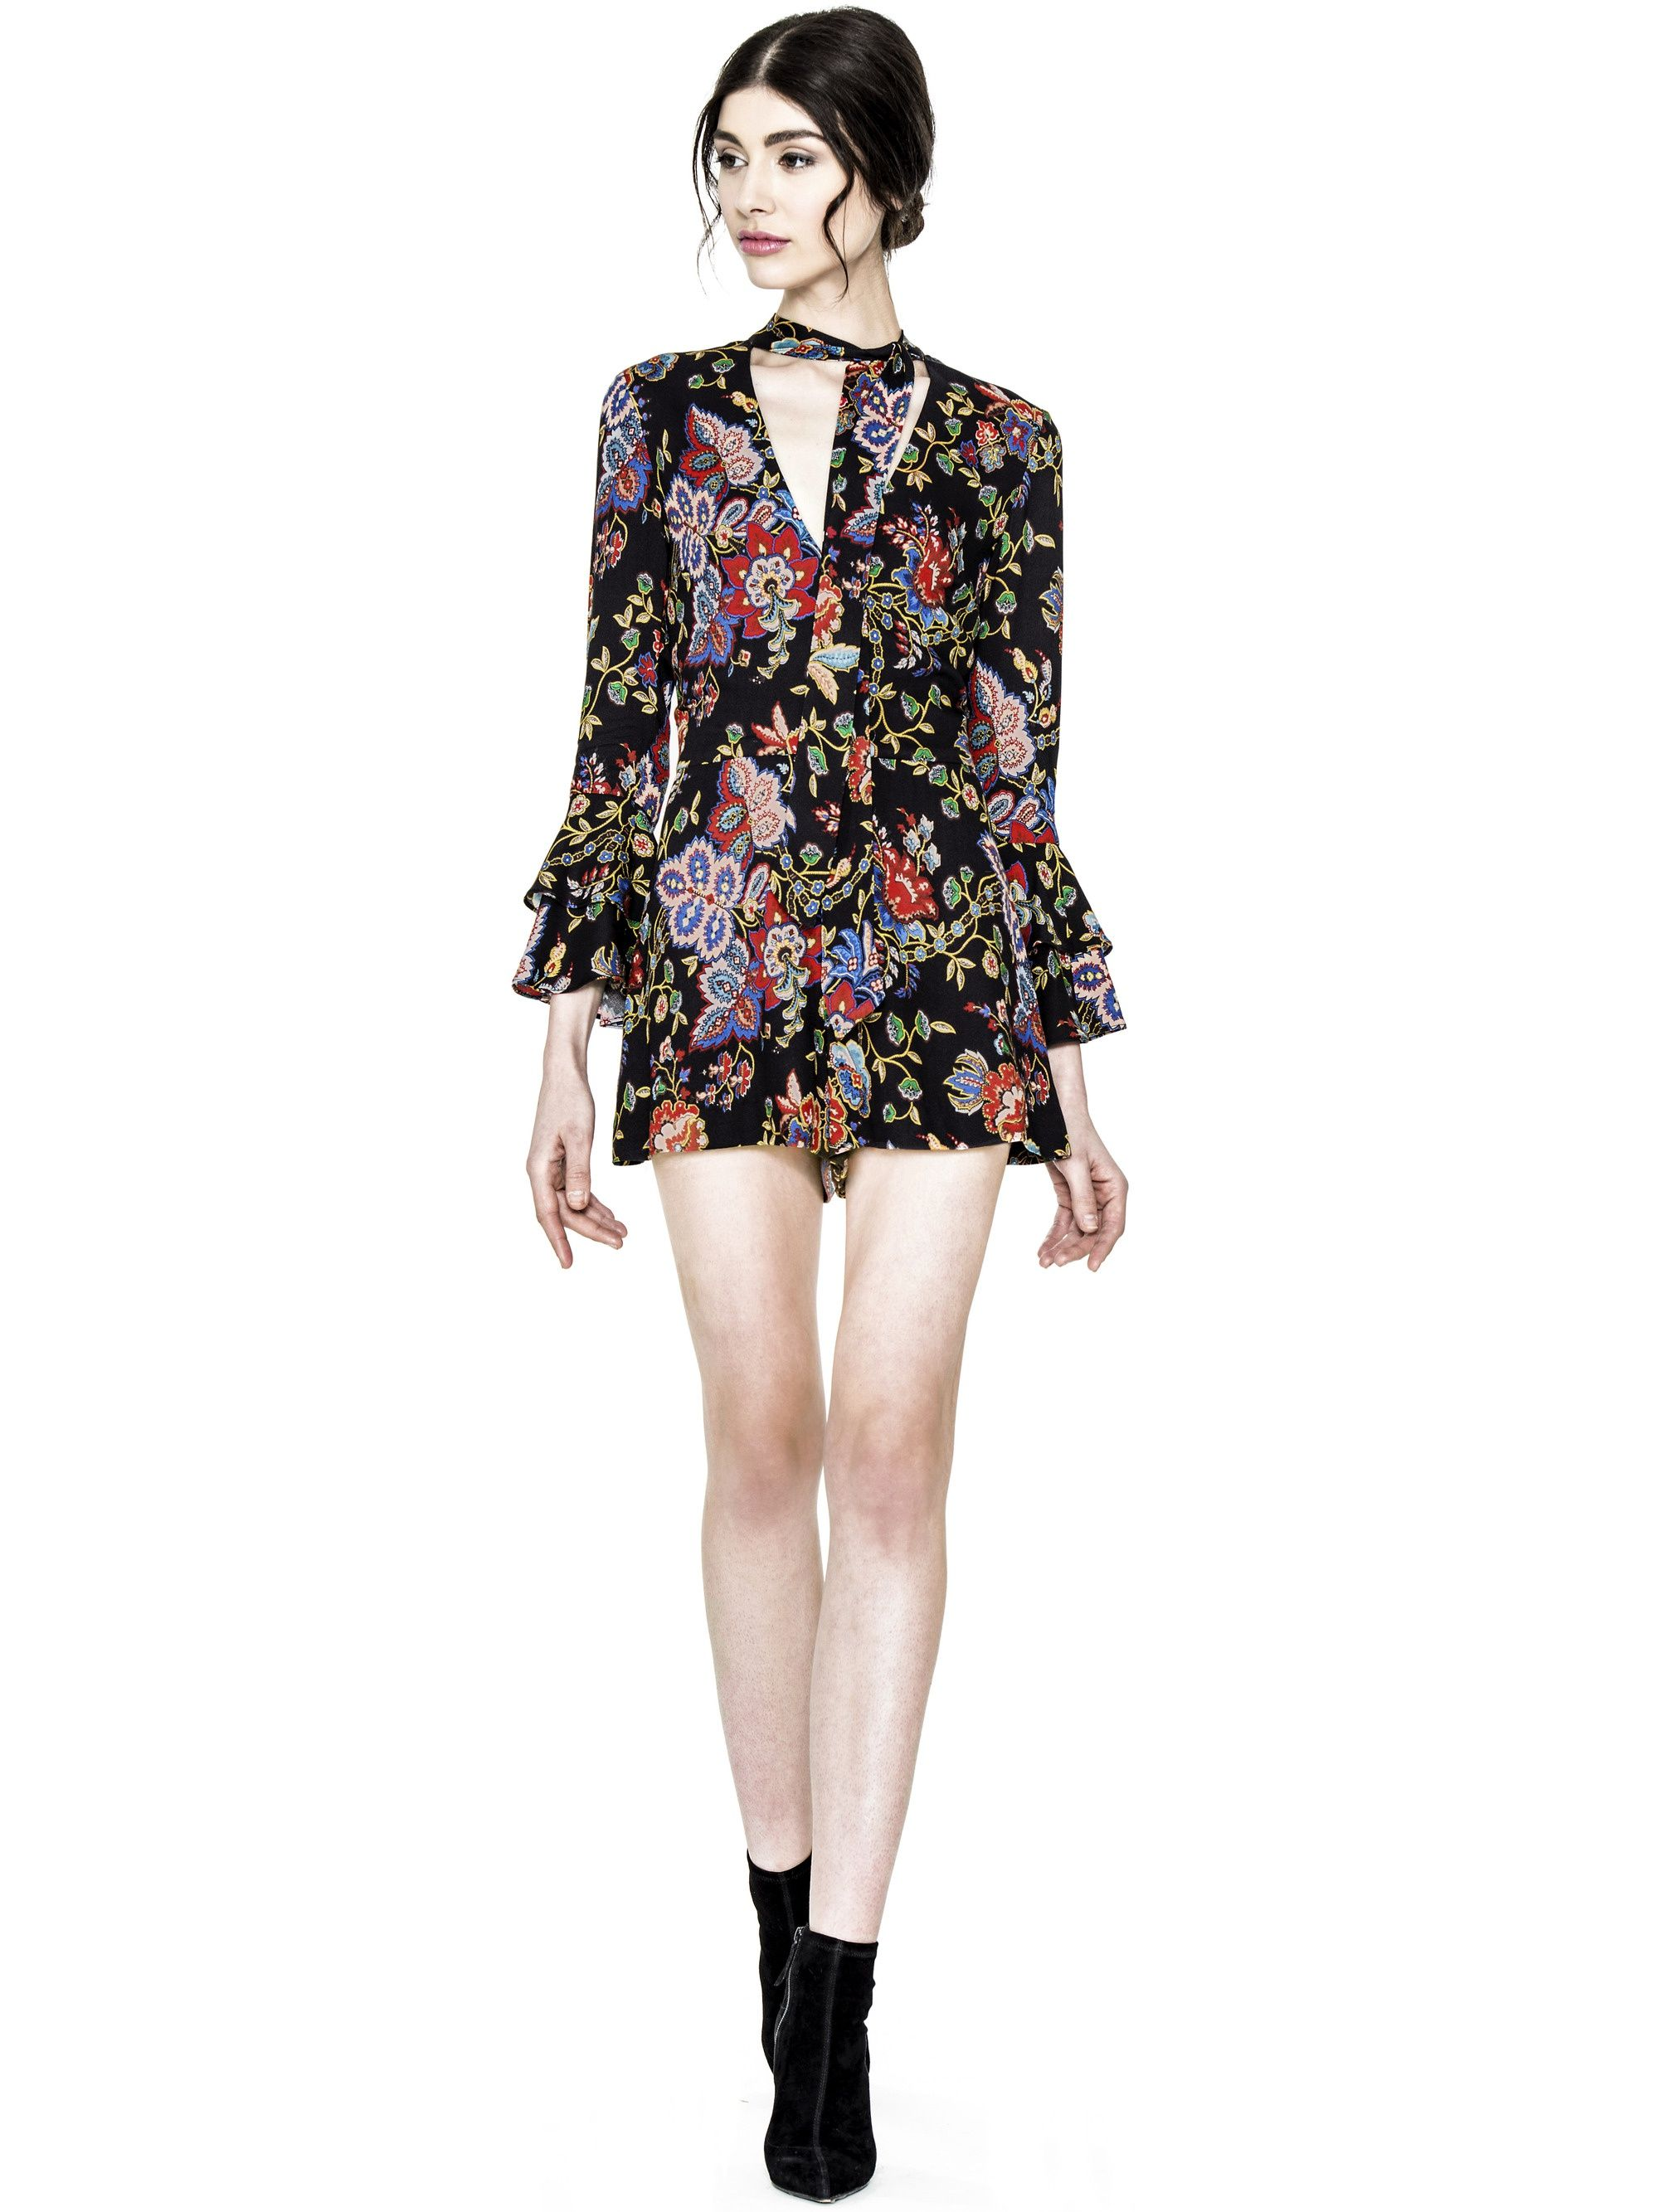 ff1de507c46 MACALL VNECK BELL SLEEVE ROMPER by Alice + Olivia  ad